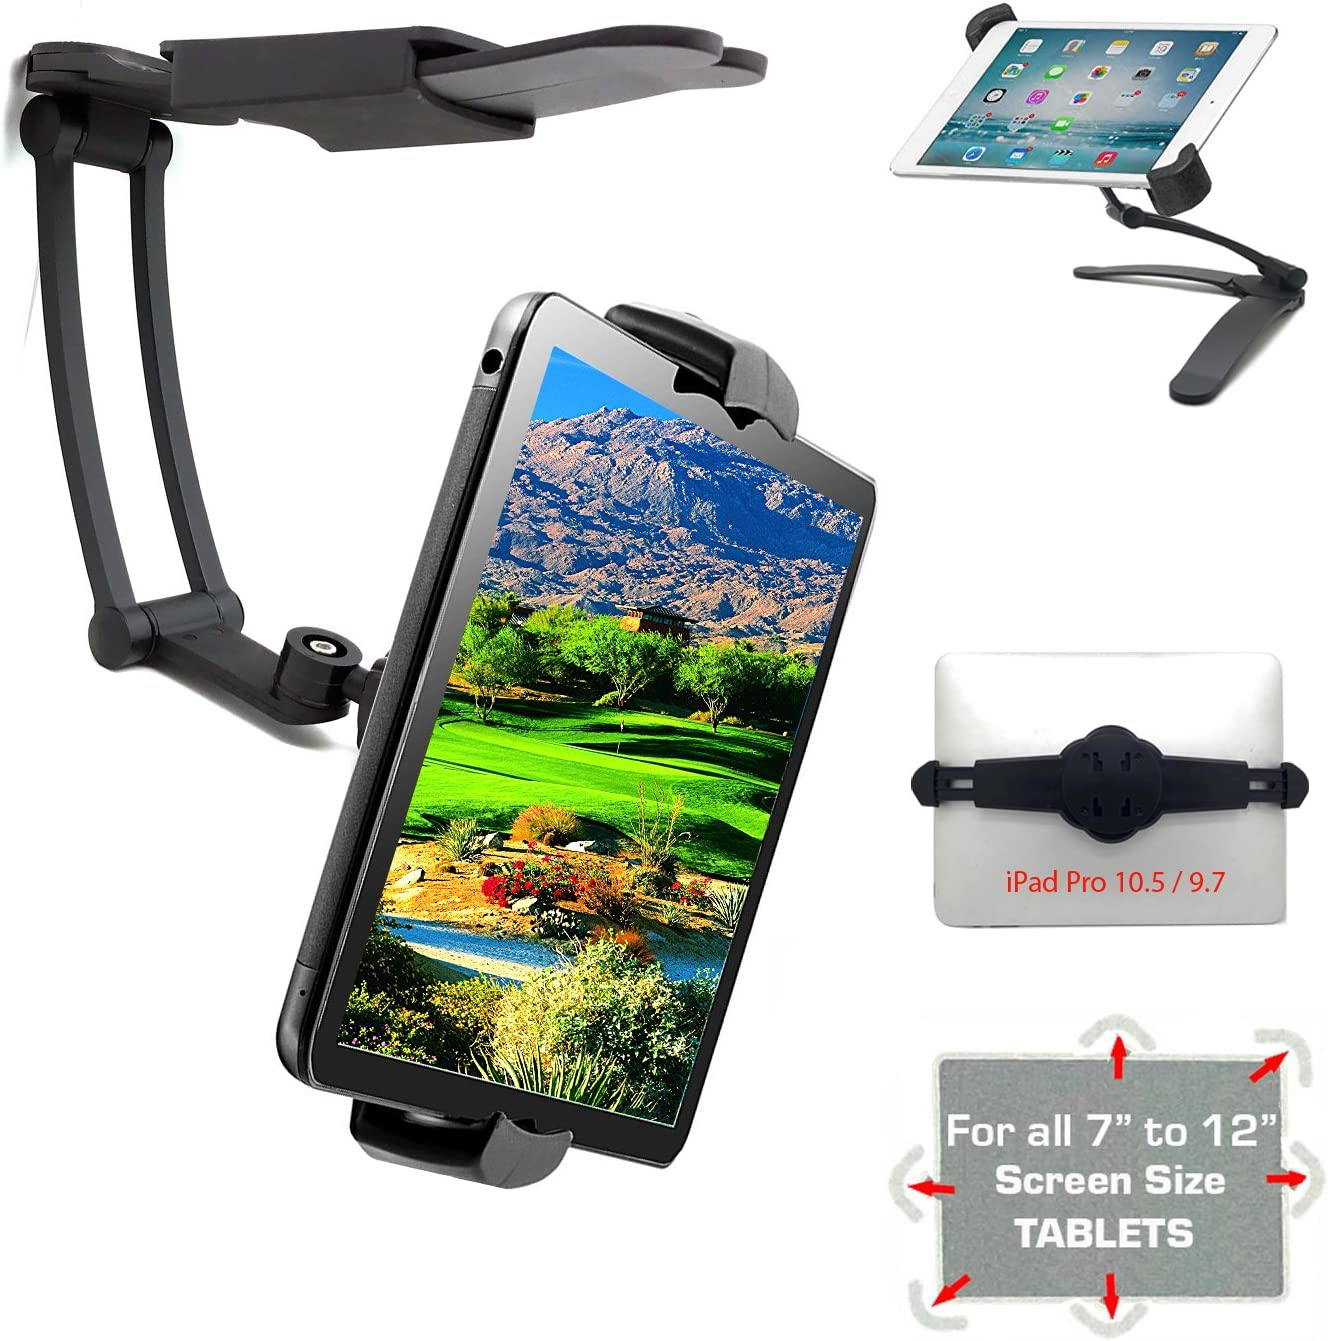 AYADA Kitchen Cabinet Tablet Holder 2 in 1 Wall Mount Desktop Stand for ipad 12.9 Aluminum Alloy Metal Adjustable Multiangle Foldable Universal Phone Tablet Bracket Cooking Table Counter Top Silver